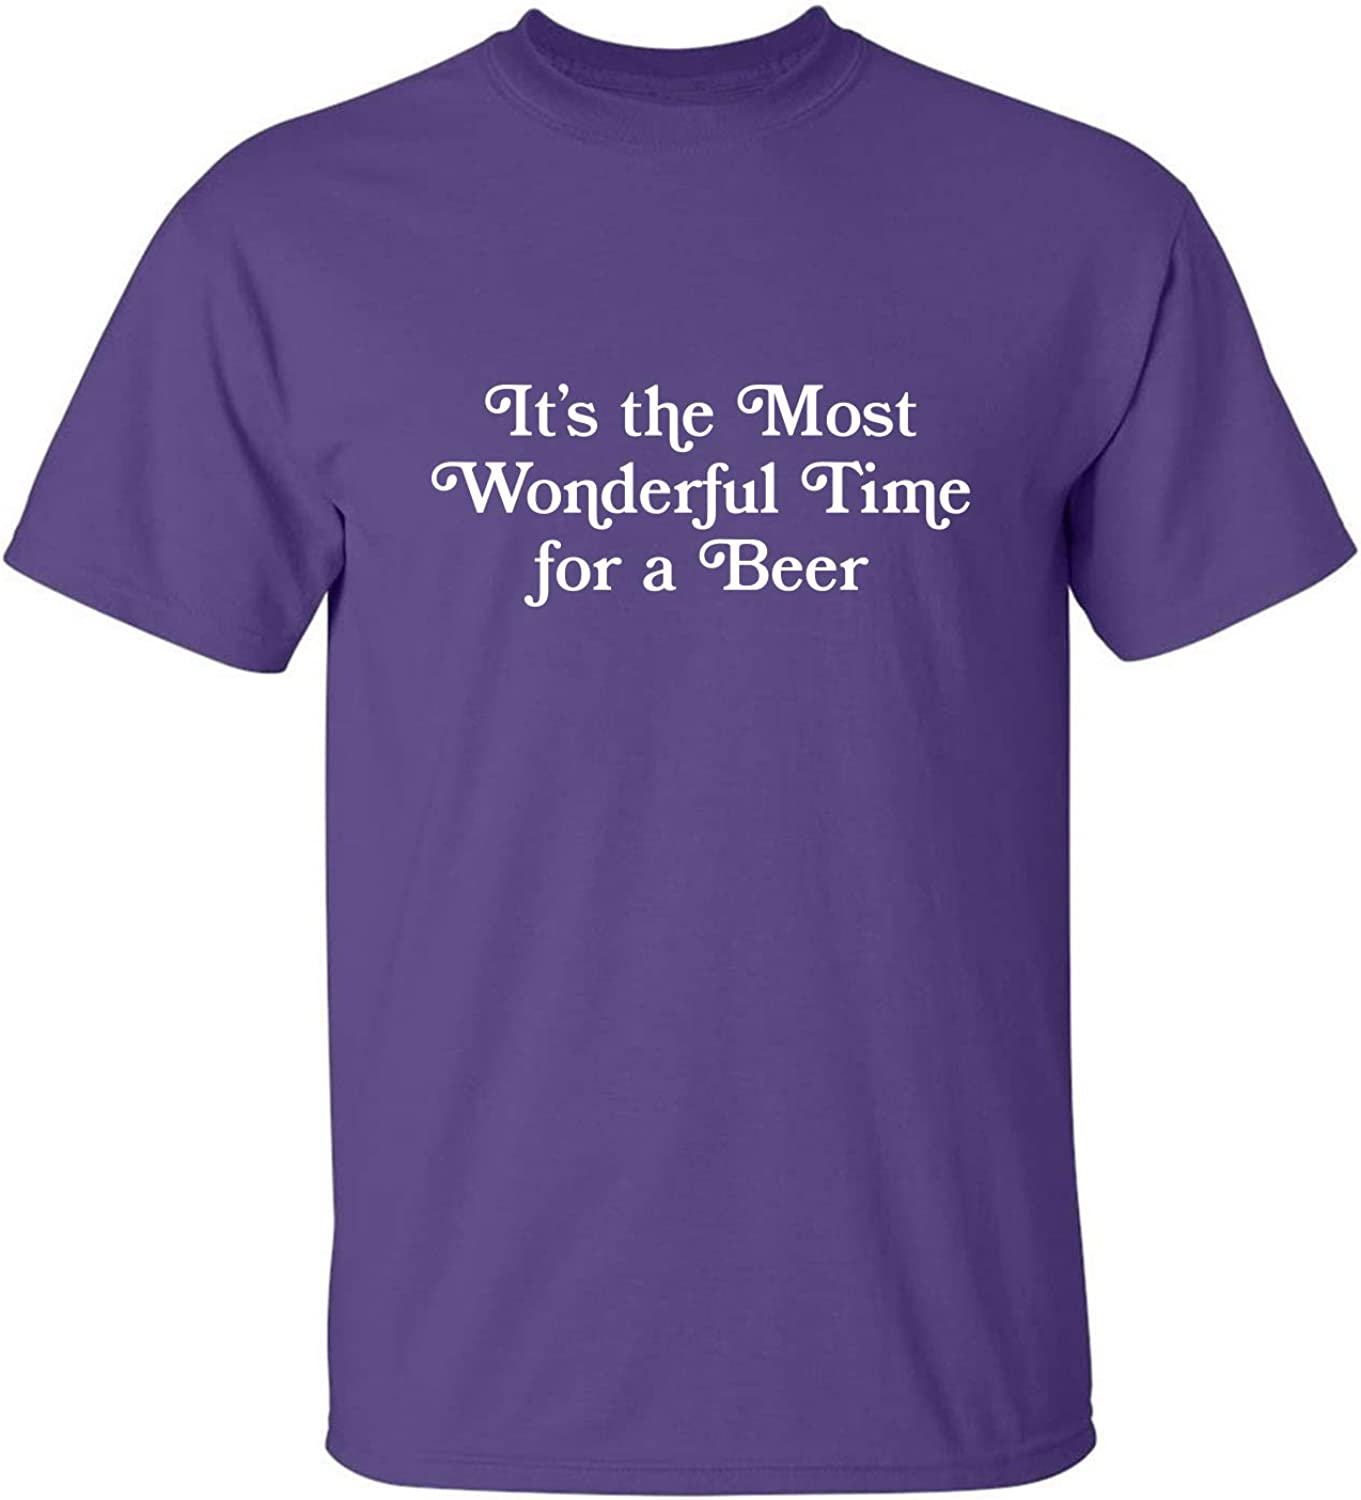 It's The Most Wonderful Time Adult T-Shirt in Purple - XXXX-Large